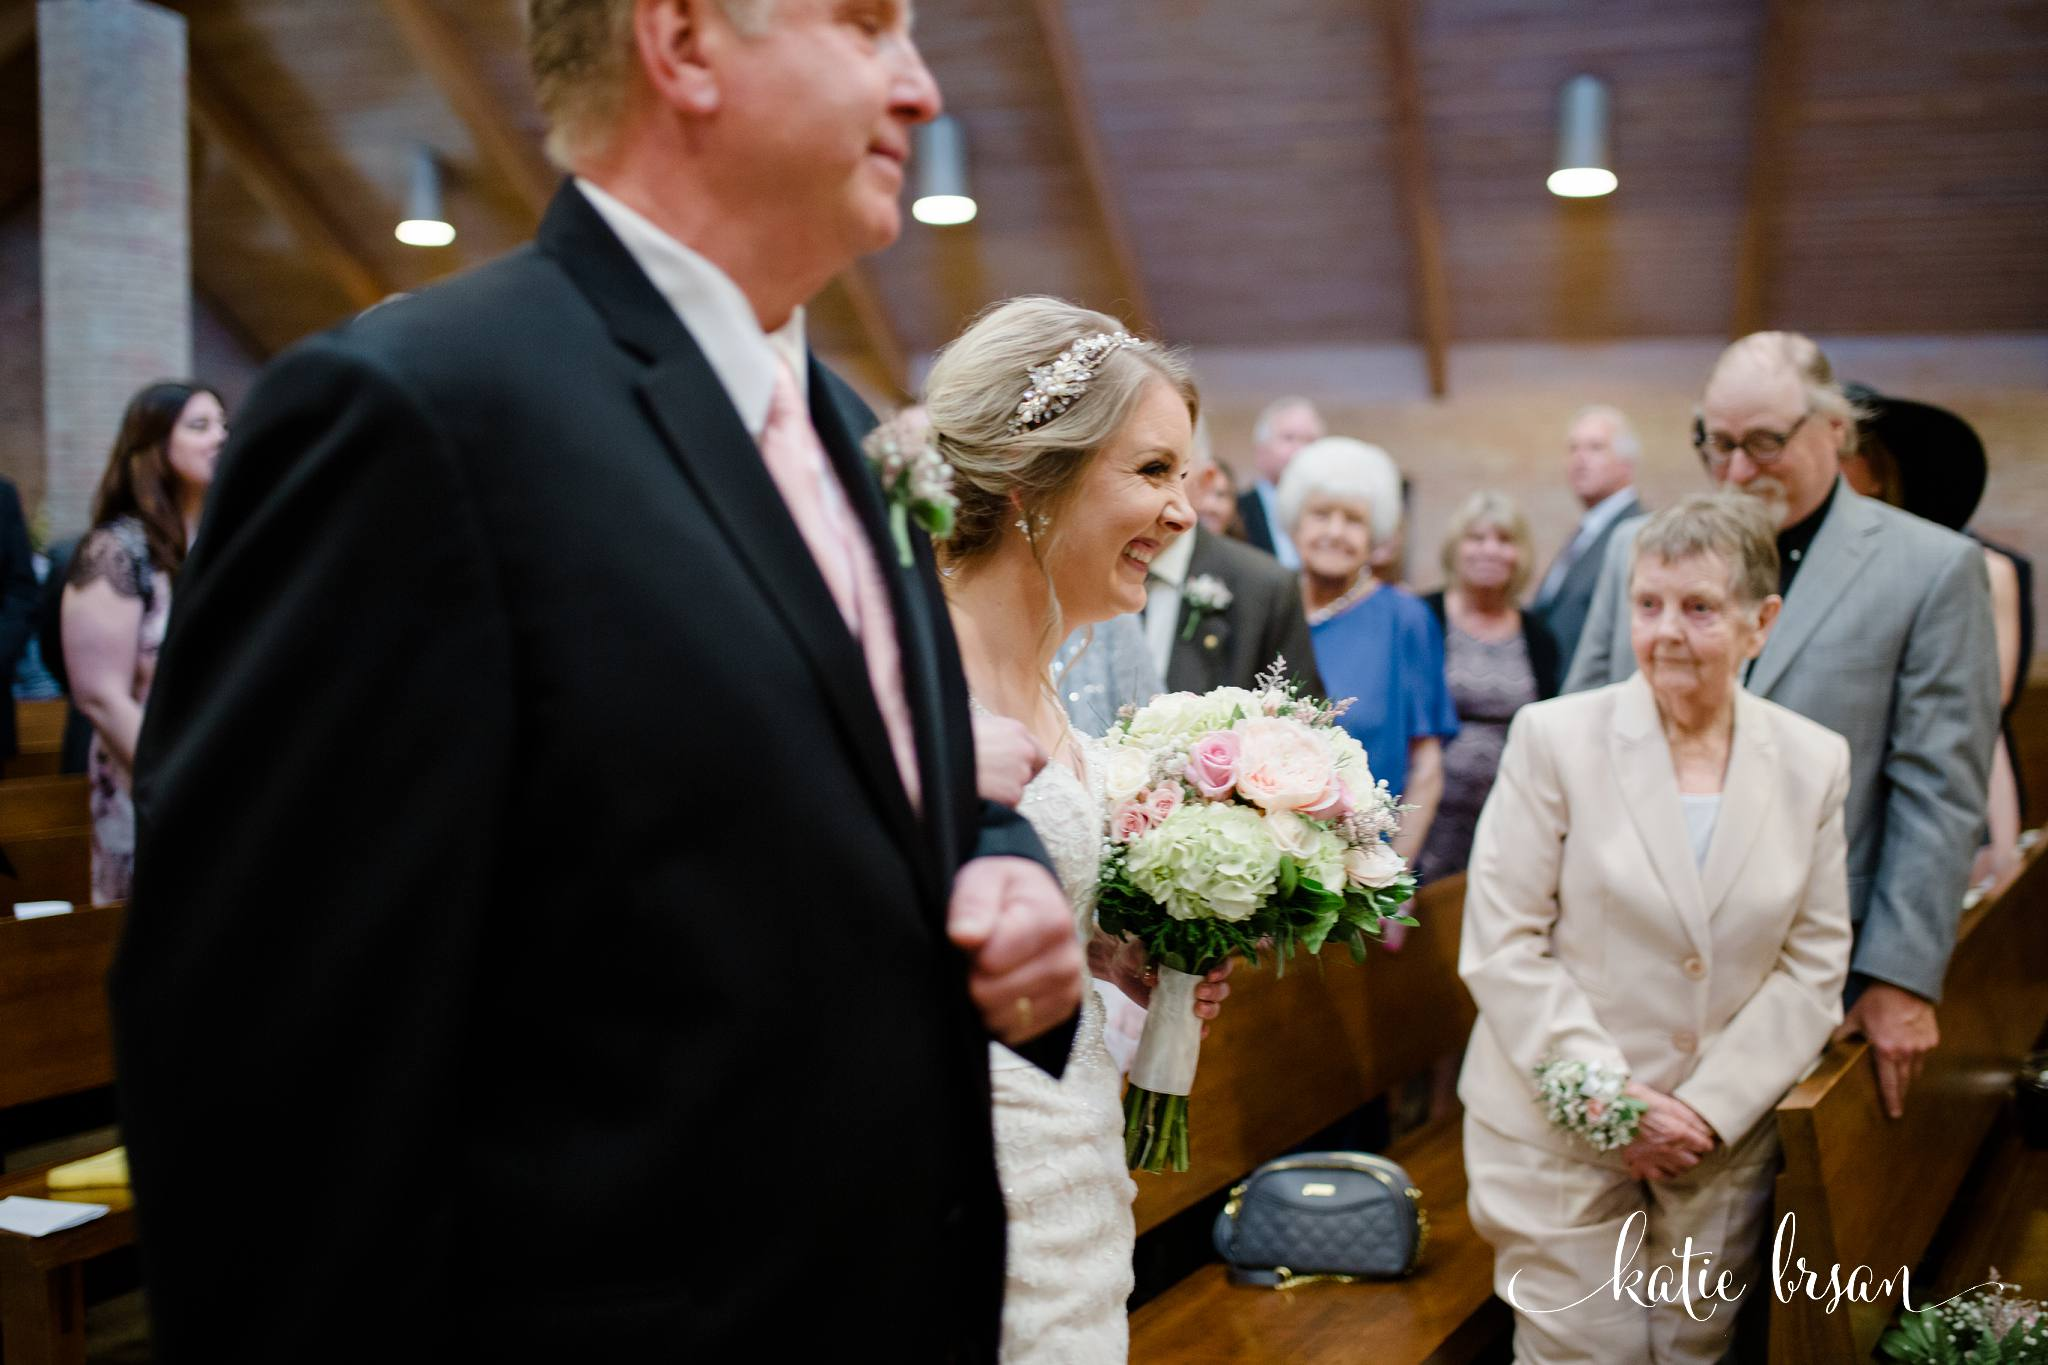 Mokena_Lemont_Wedding_Ruffled_Feathers_Wedding_1362.jpg